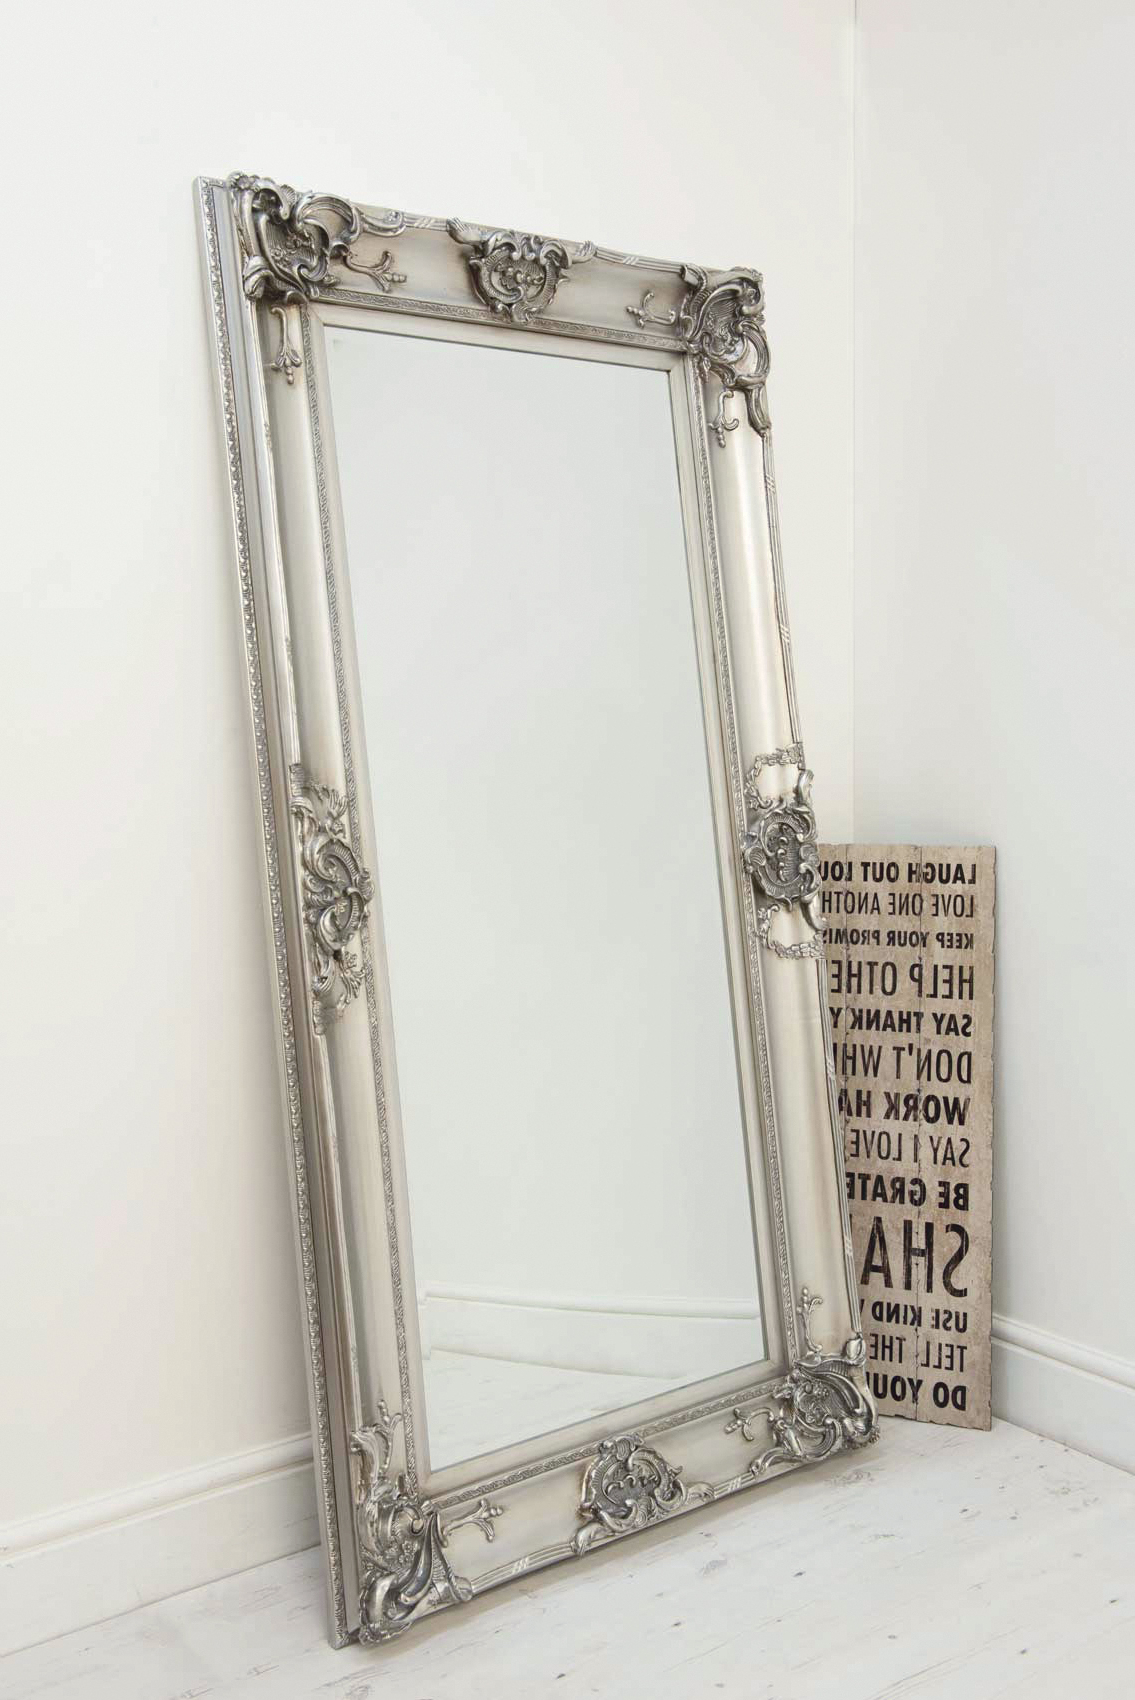 Latest Details About Beautiful Large Silver Decorative Ornate Wall Mirror 6ft X 3ft 183 X 91cm Pertaining To Large Silver Wall Mirrors (View 2 of 20)